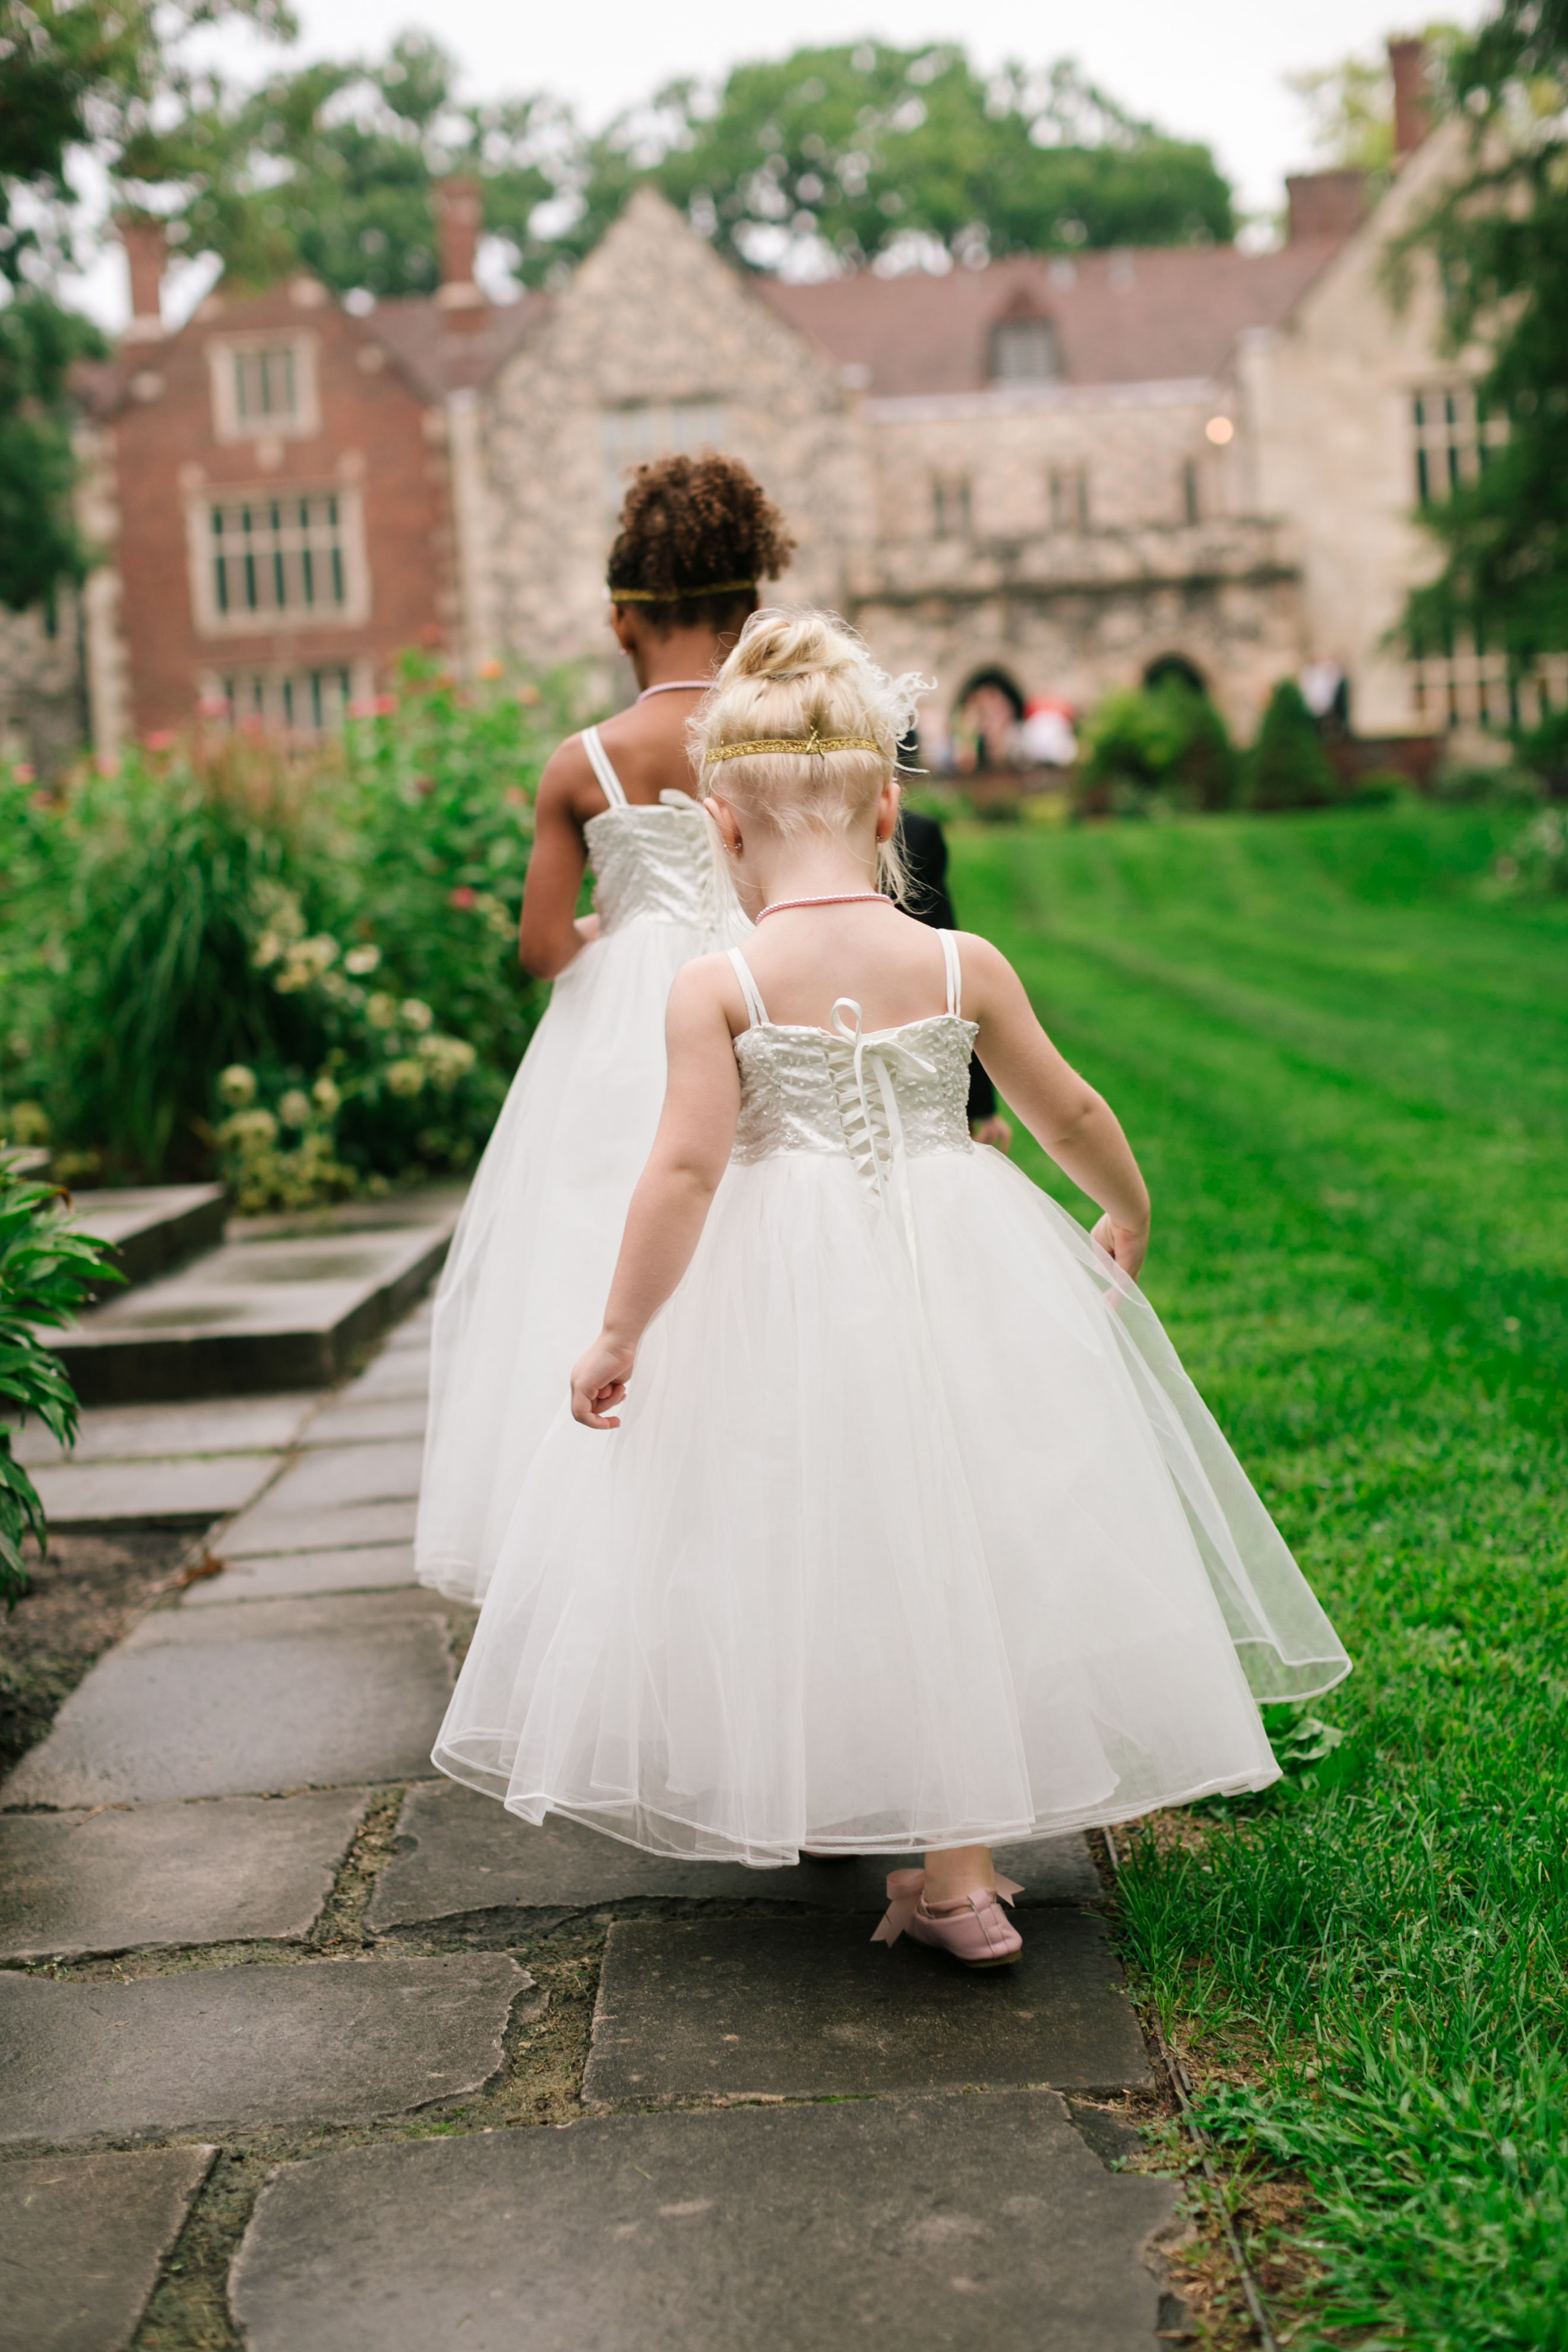 Someday these flower girls will grow up and watch their wedding ...